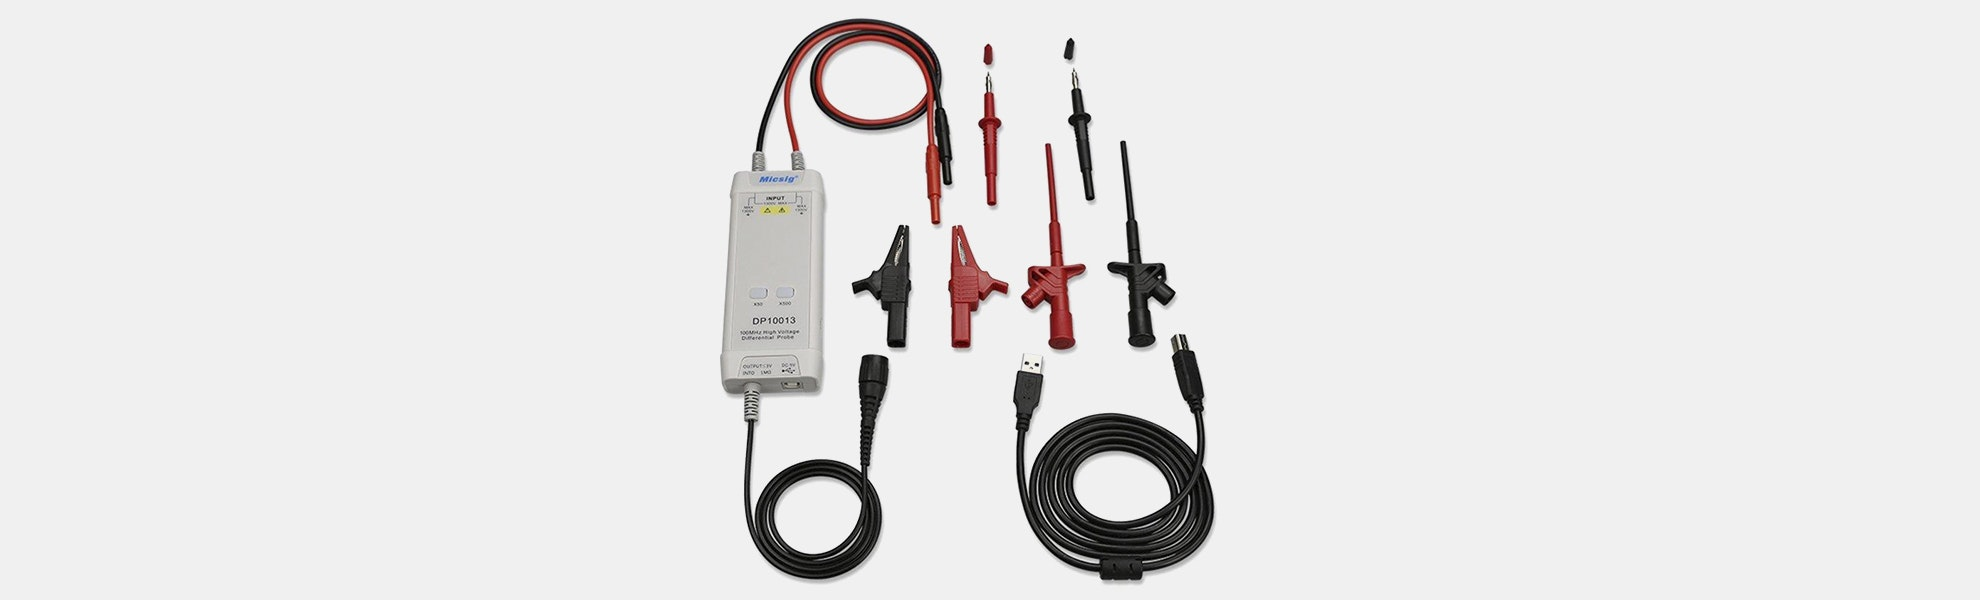 High-Voltage Differential Probe for Oscilloscope